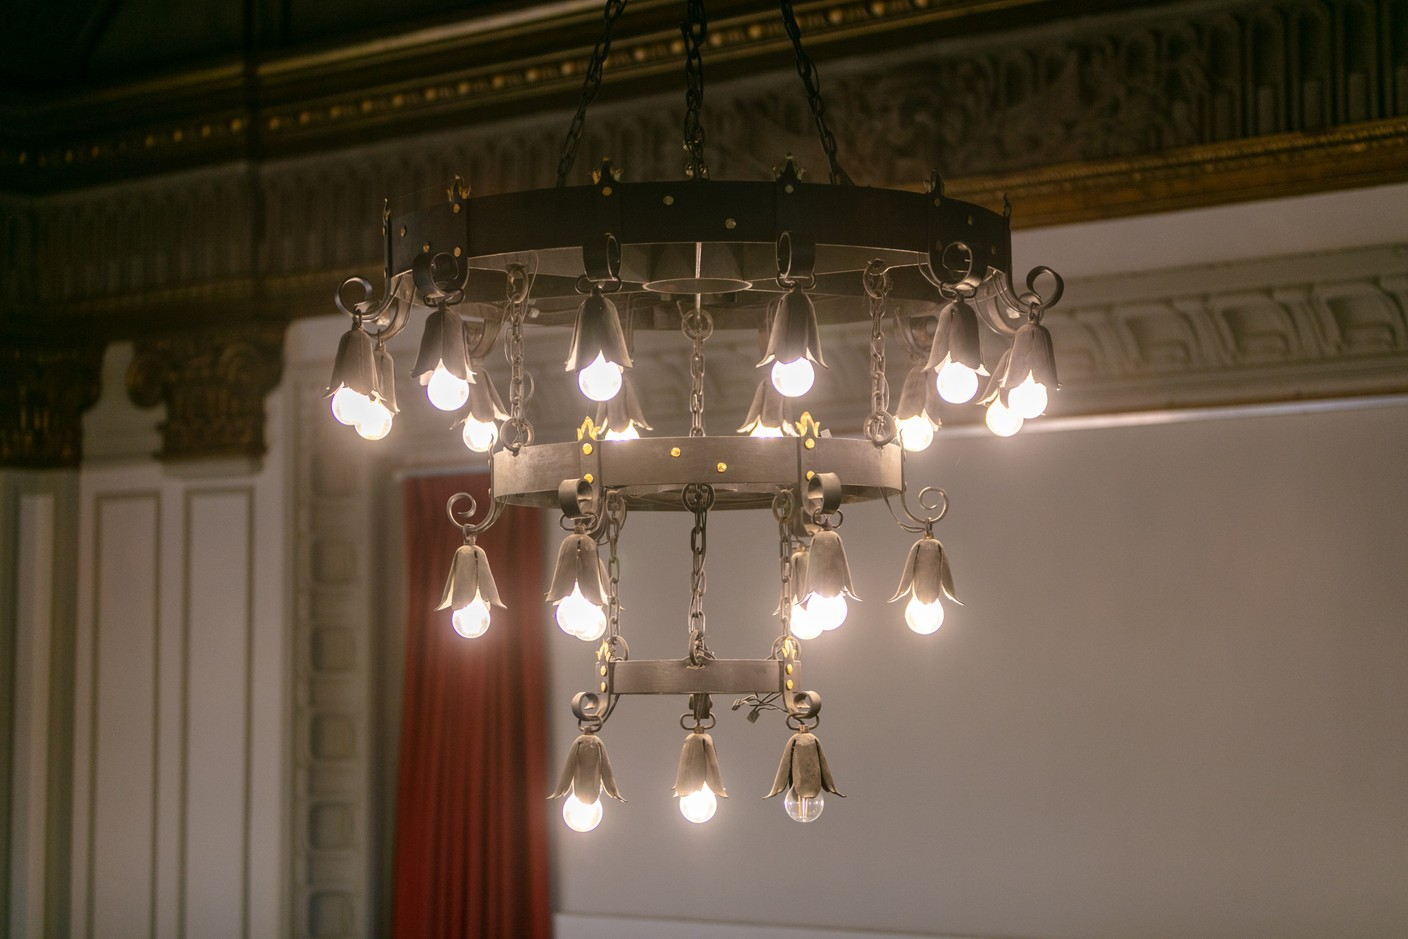 Chandeliers were once worked with ropes but have since been modernised Romain Gamba / Maison Moderne